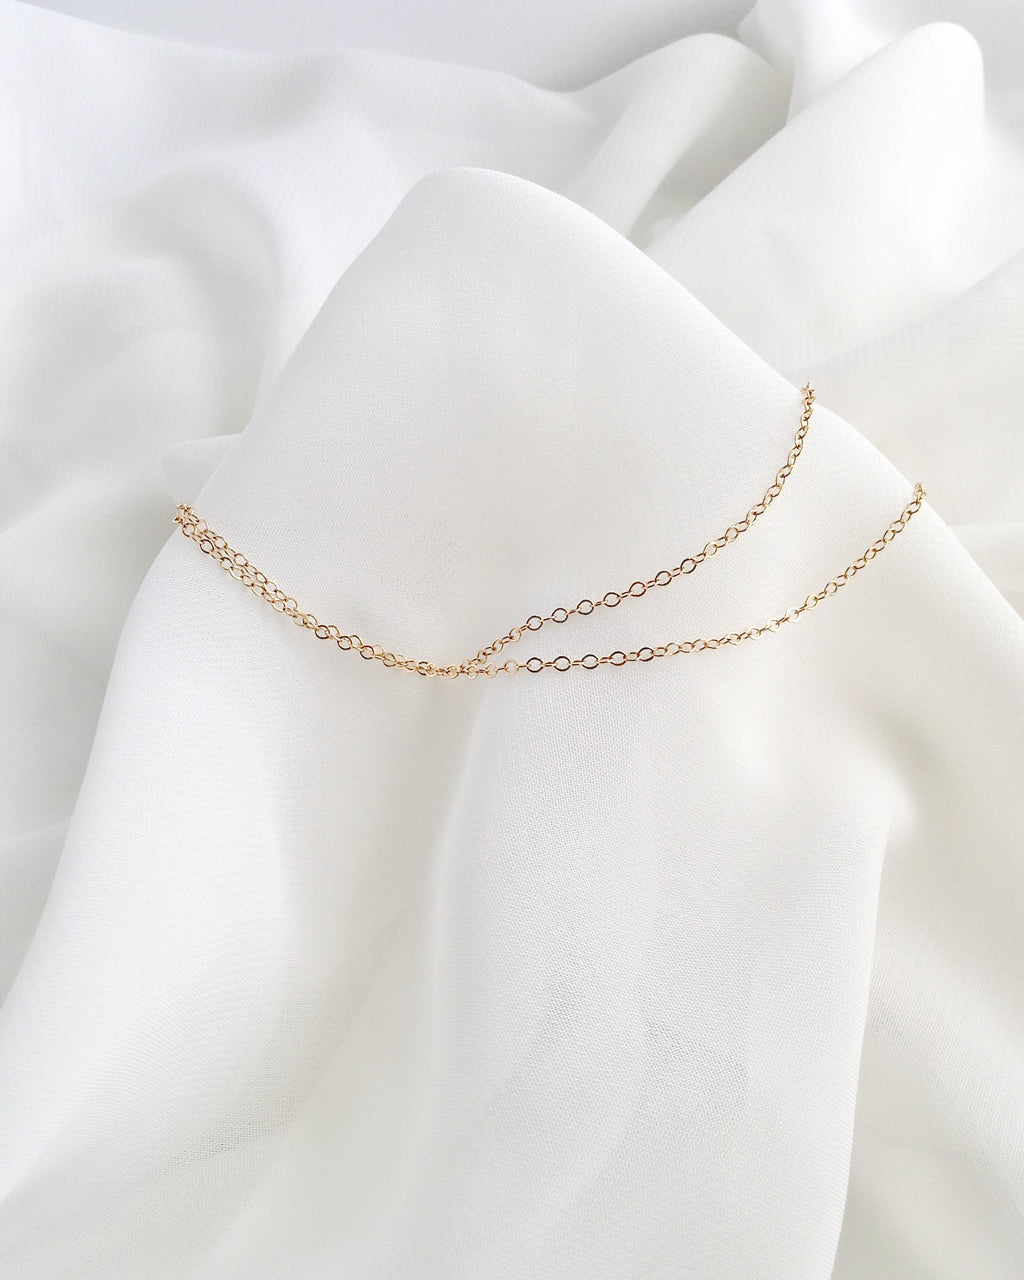 Double Chain Anklet | Simple Delicate Anklet in Gold Filled or Sterling Silver | IB Jewelry